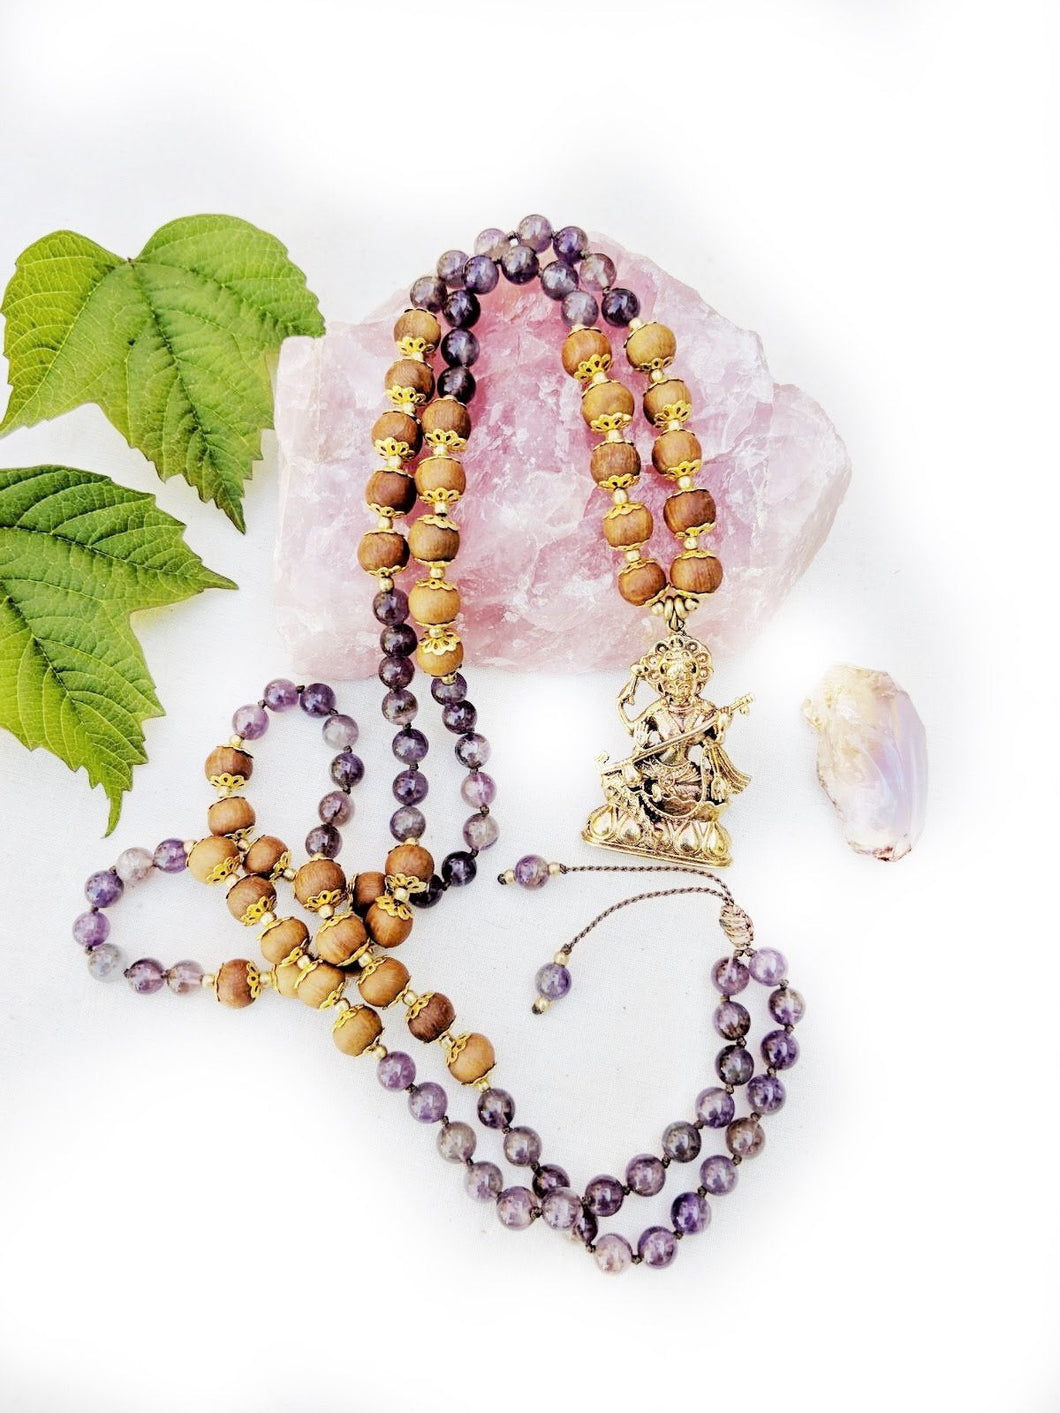 Yoga Mala | Amethyst Sandalwood Saraswati Pendant Necklace | 108 Beads